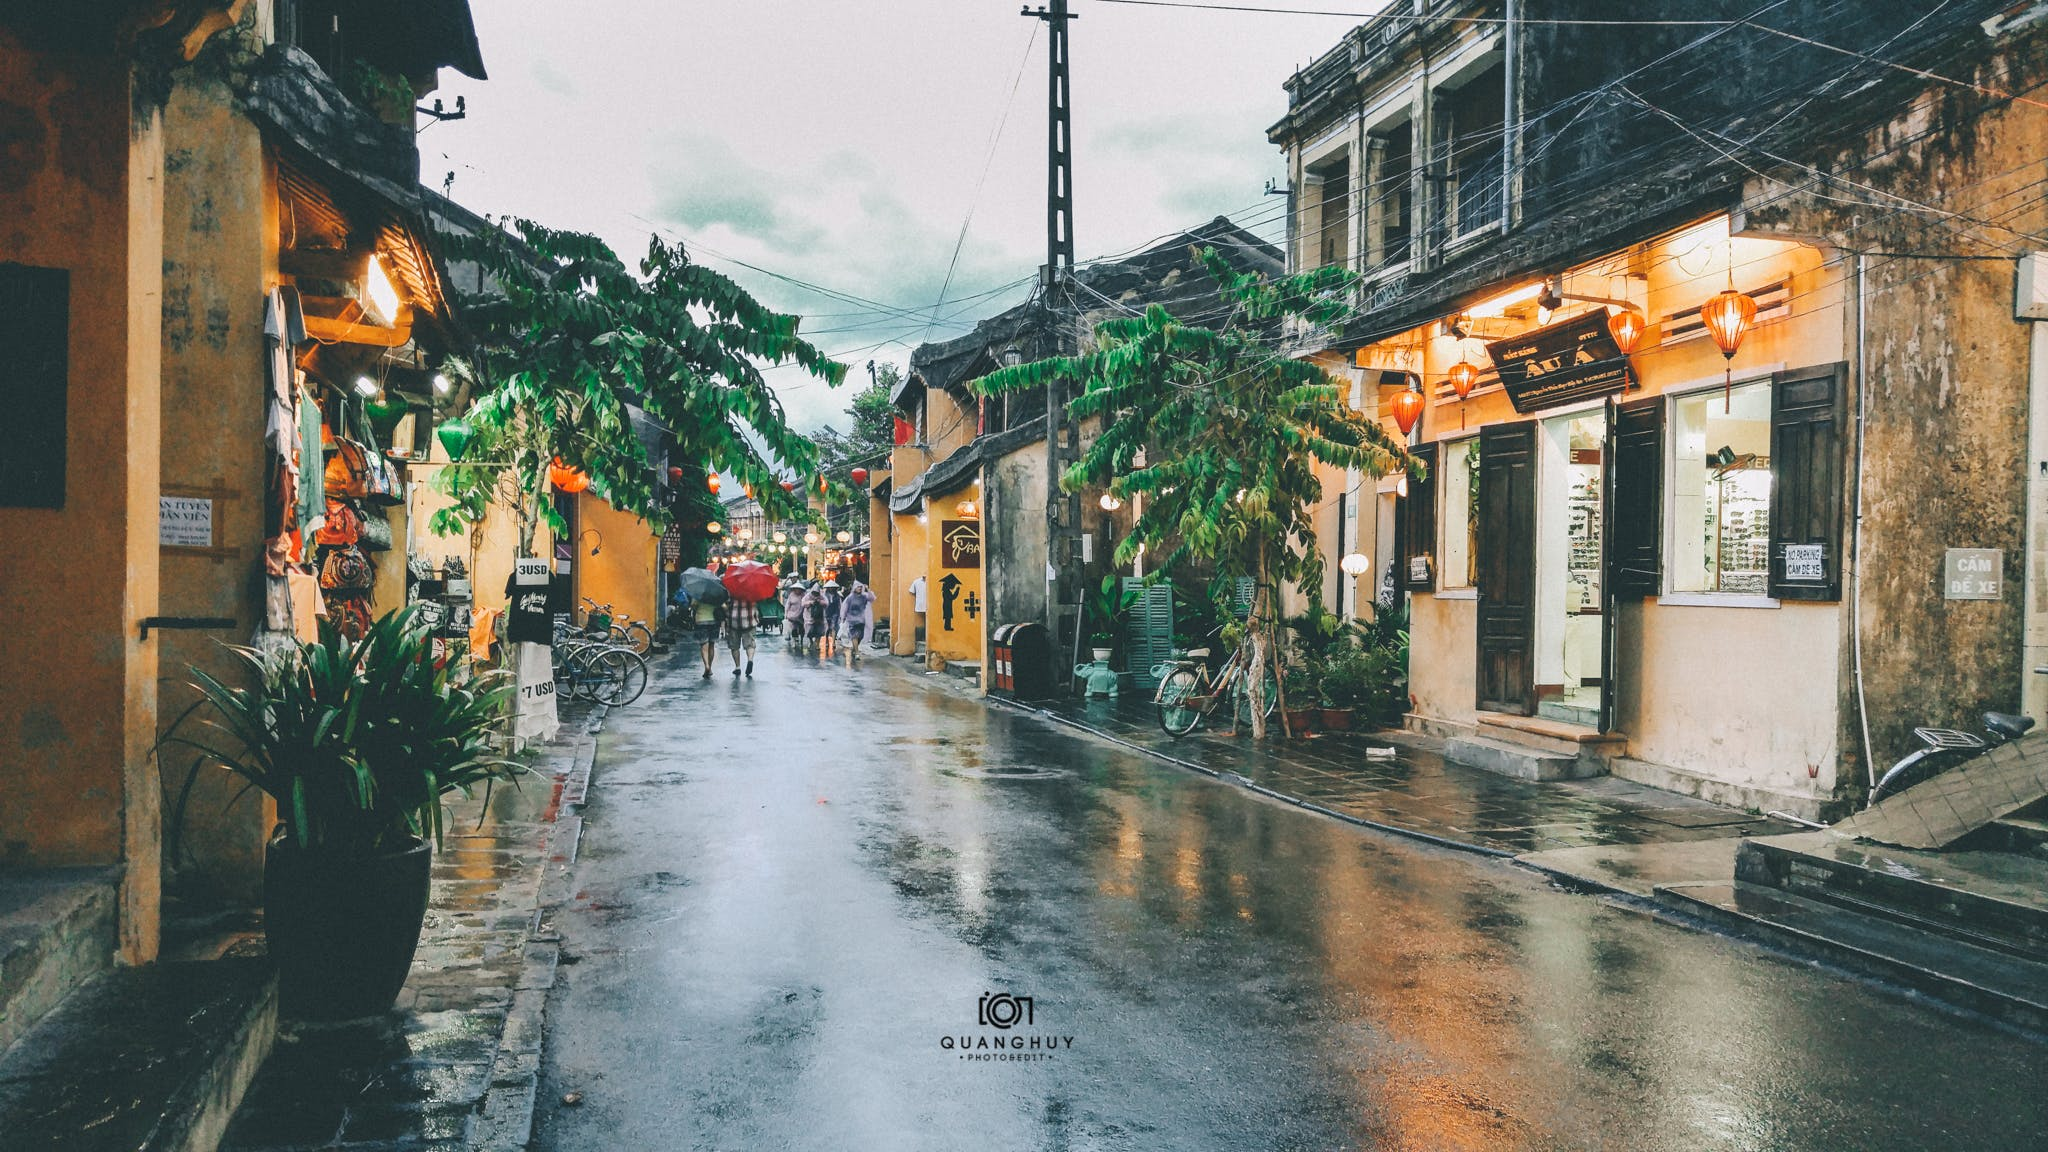 Free stock photo of hội an, lgg4